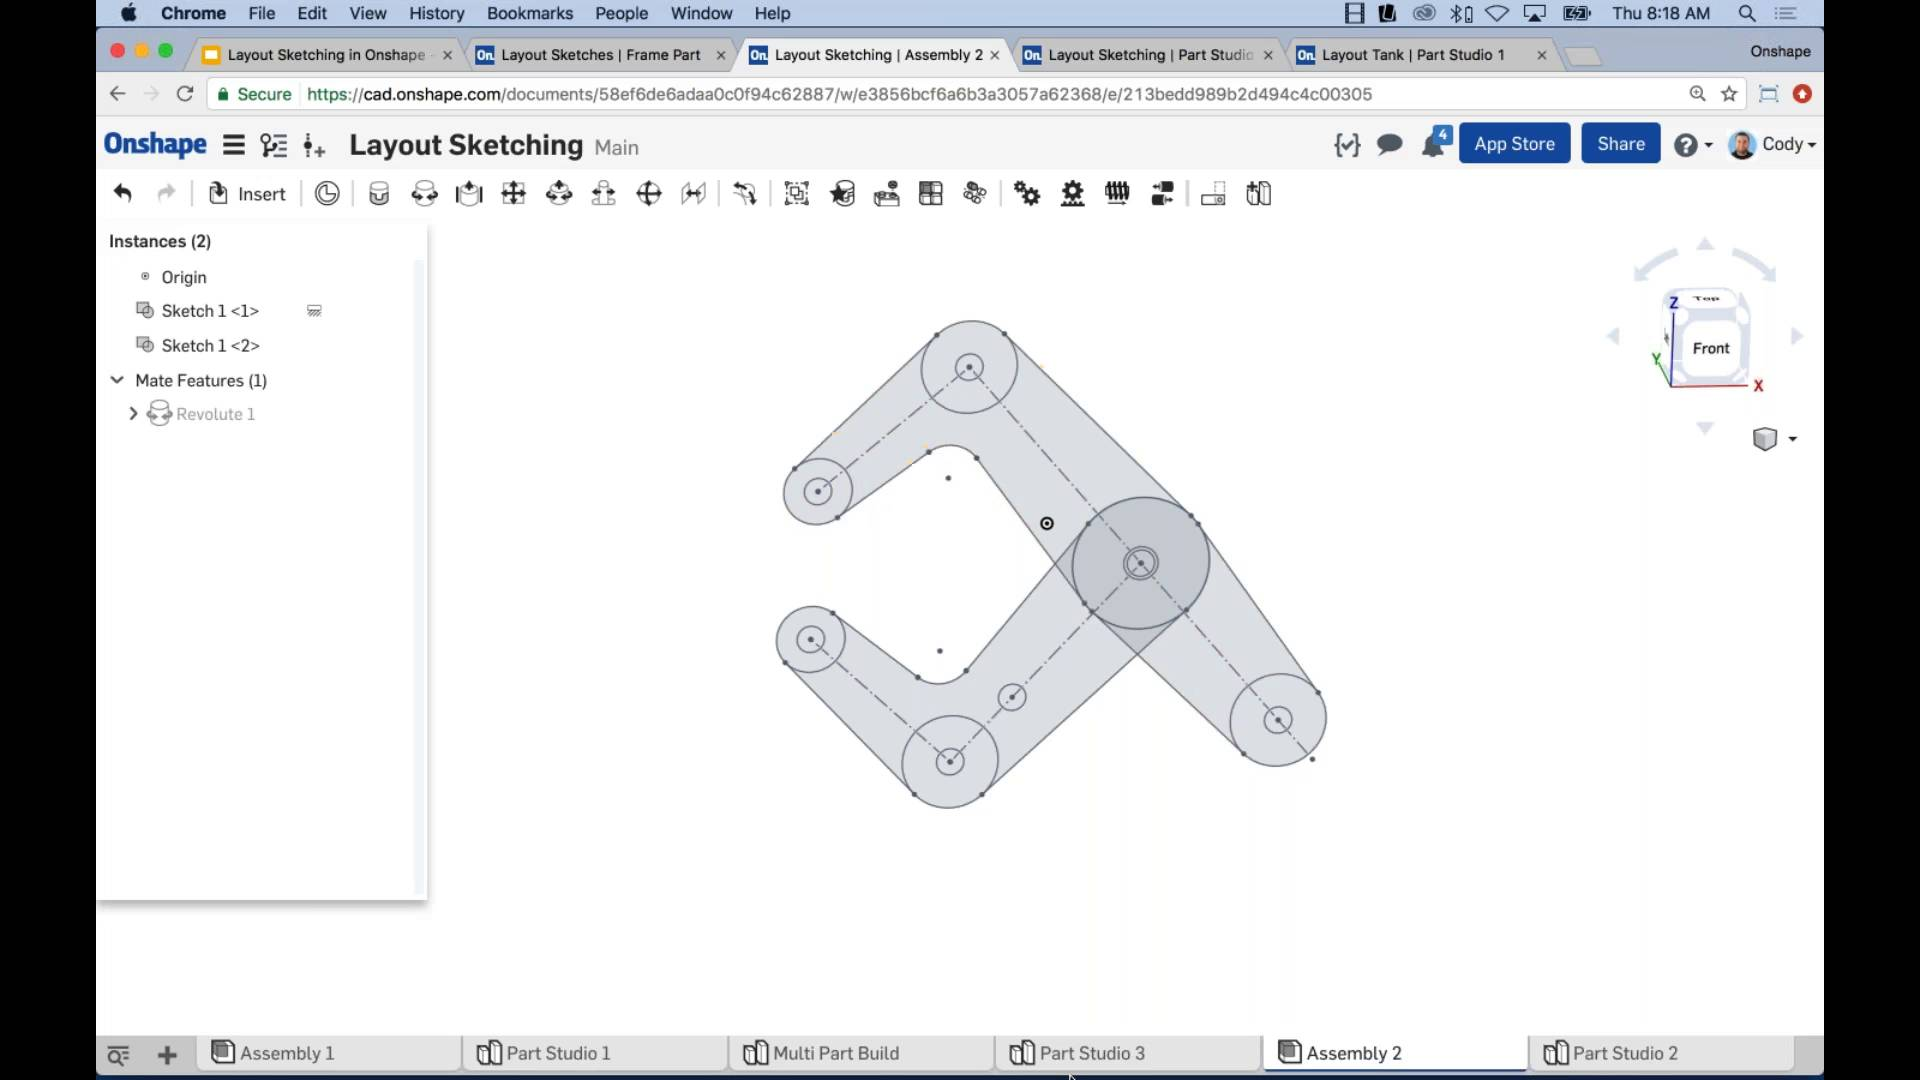 Layout Sketching in Onshape on